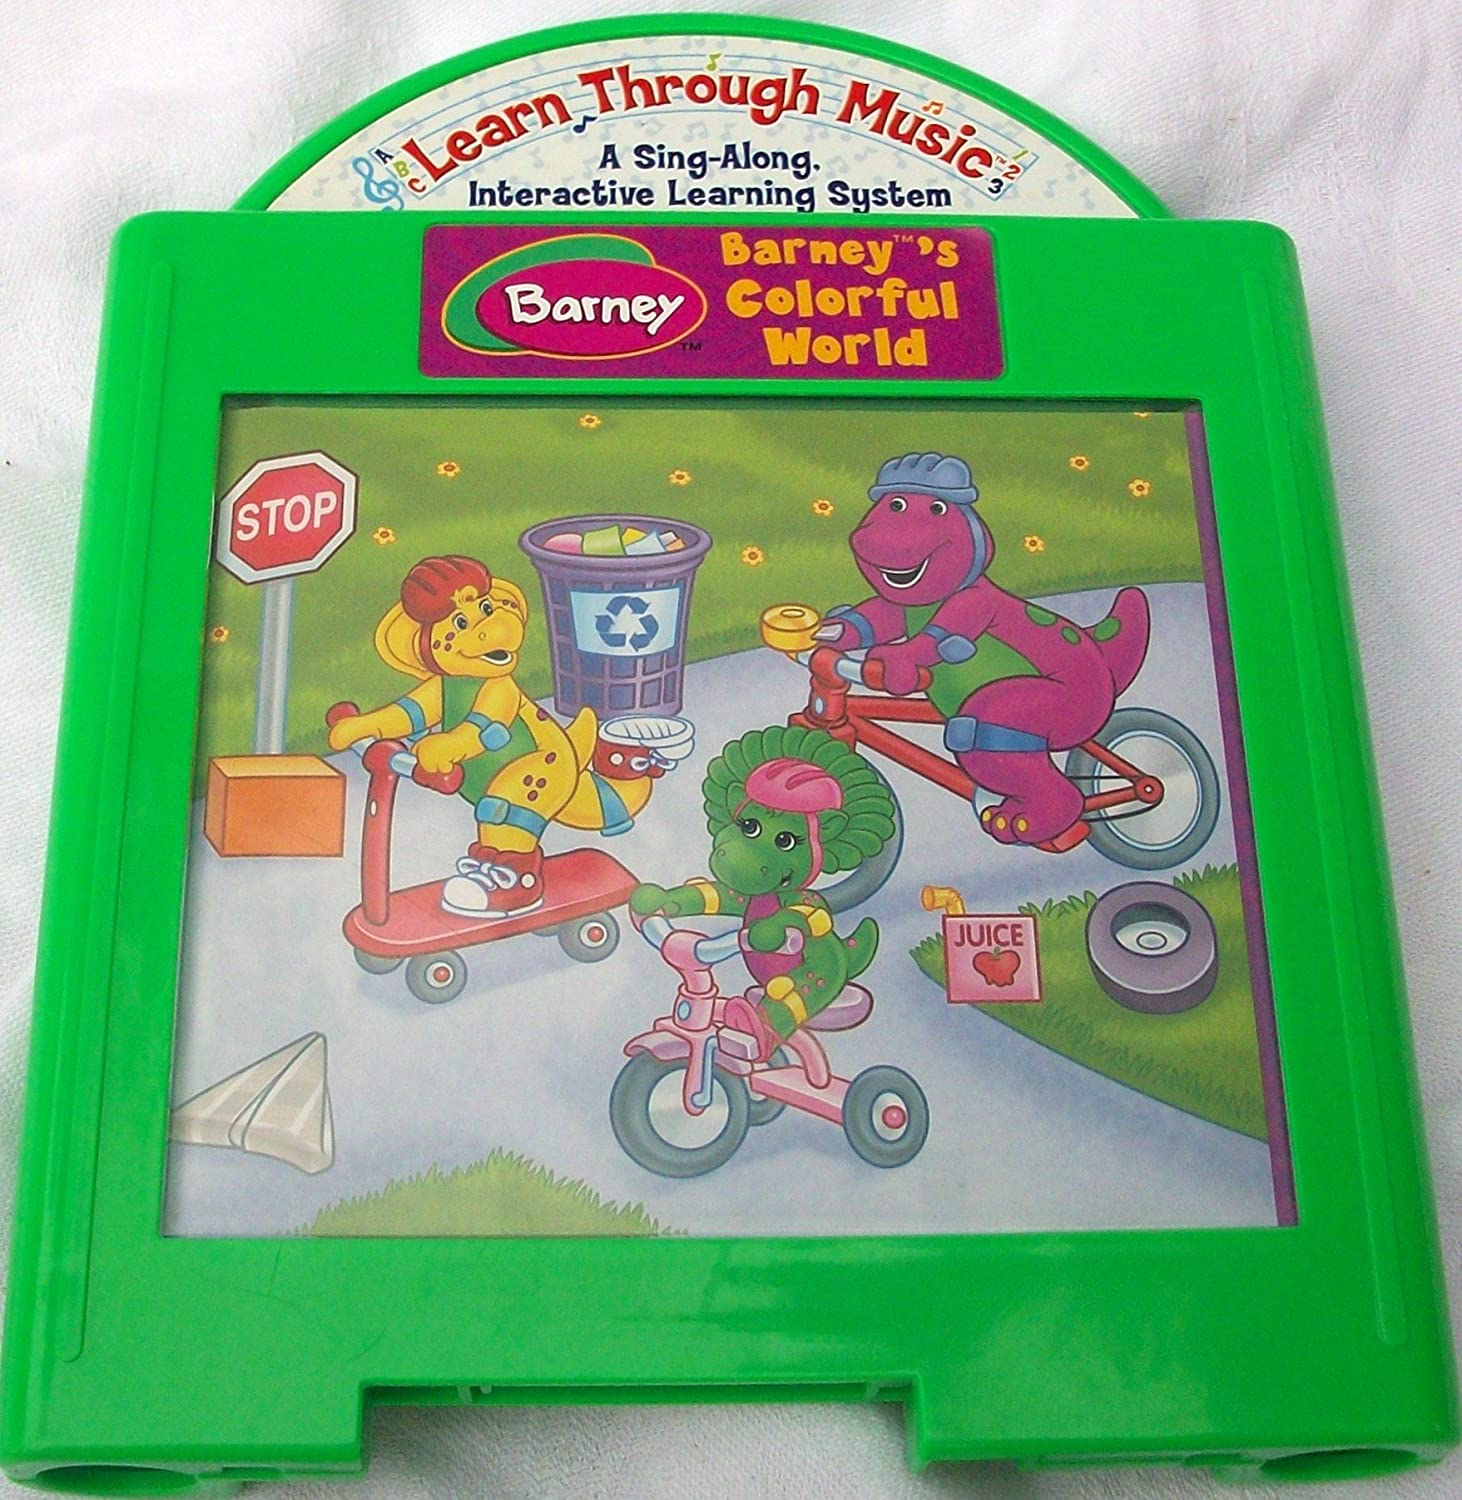 Learn Through Music Barneys Colorful World Cartridge Sing Along Interactive Learning System Barney